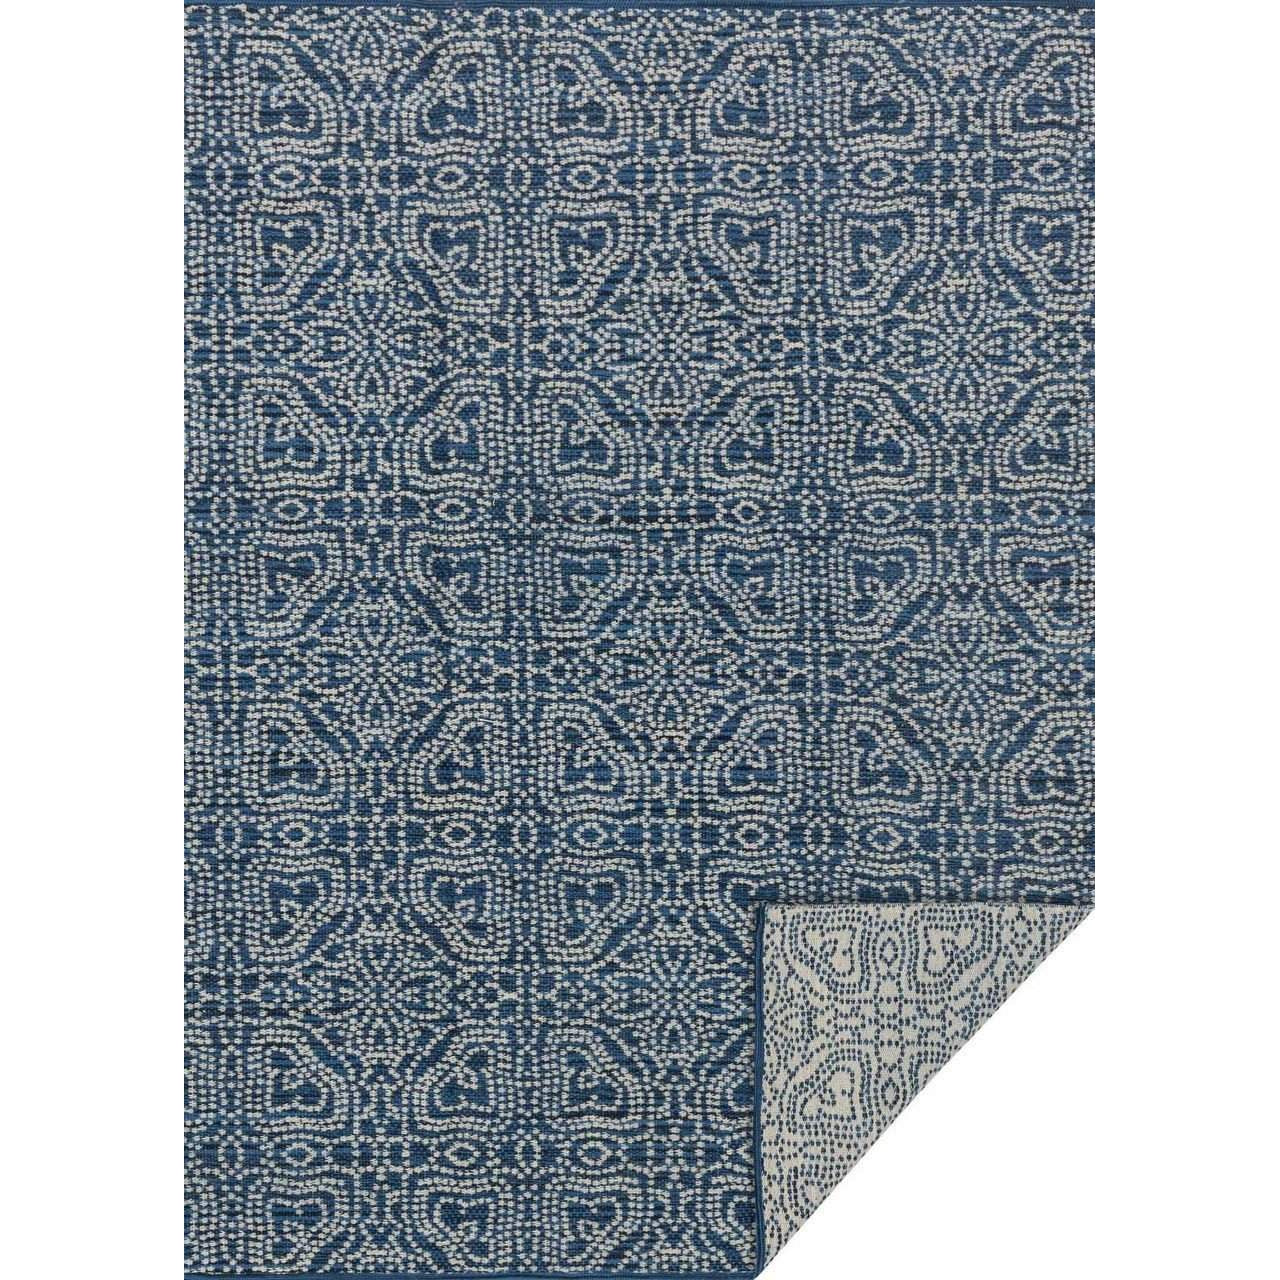 Joanna Gaines Emmie Kay Rug - Navy / Cream - Blue Hand Home